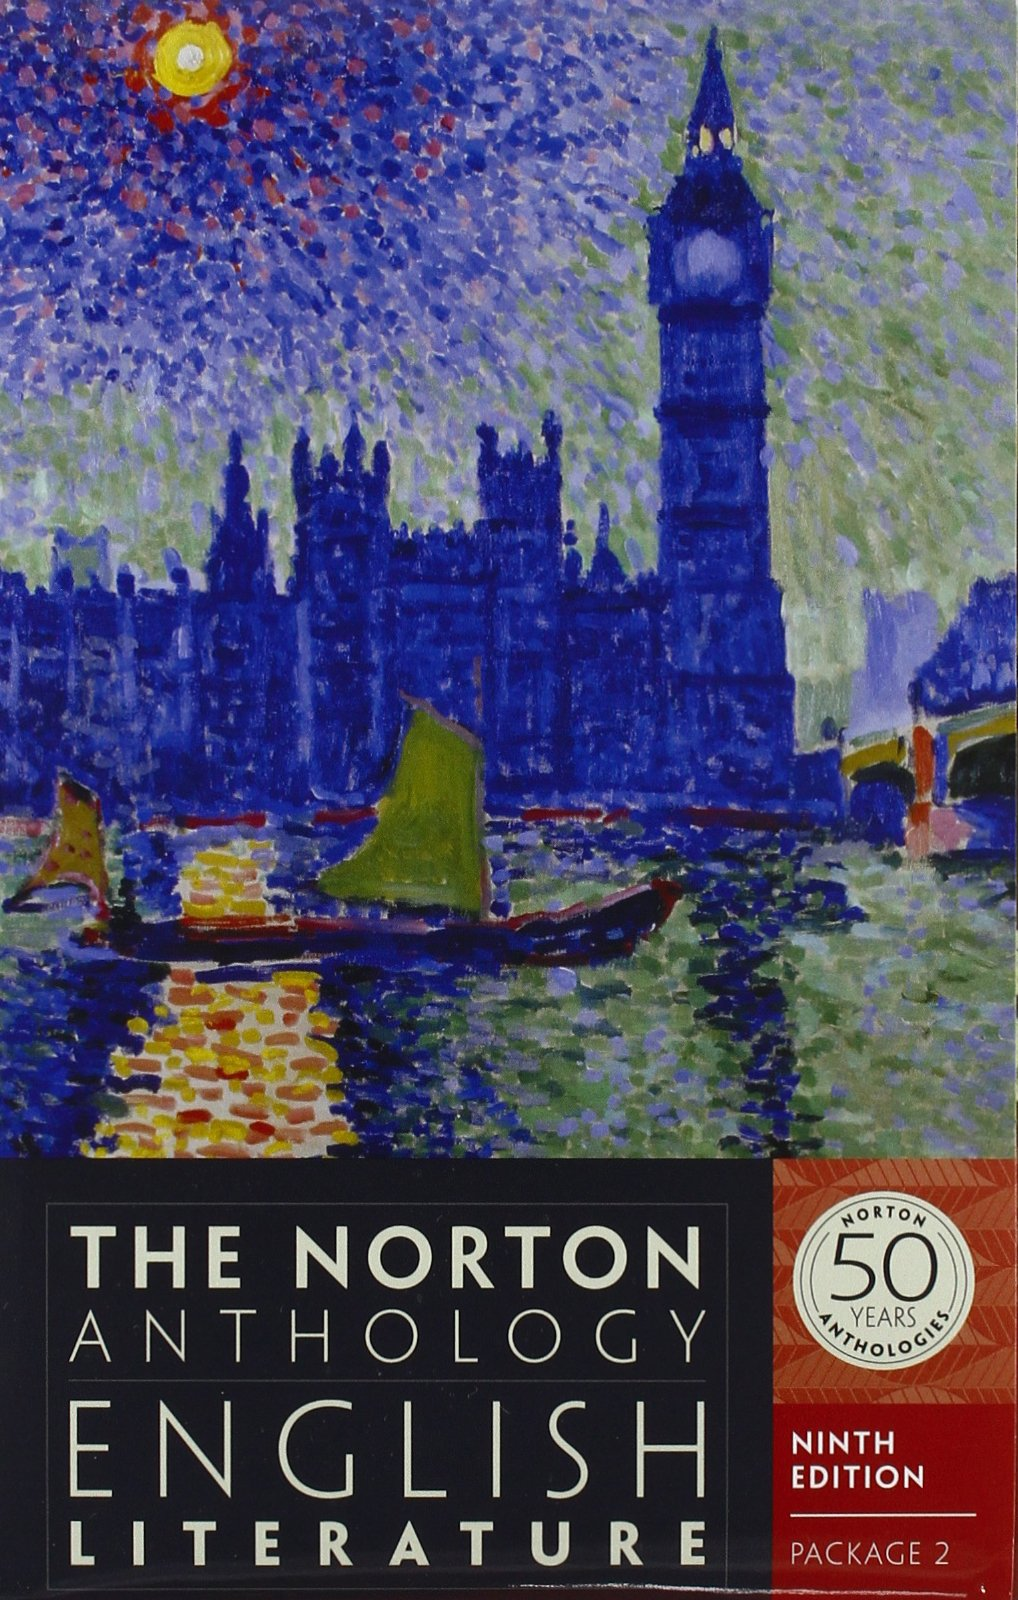 The Norton Anthology of English Literature (Ninth Edition)  (Vol. Package 2: Volumes D, E, F) by Greenblatt Stephen EDT